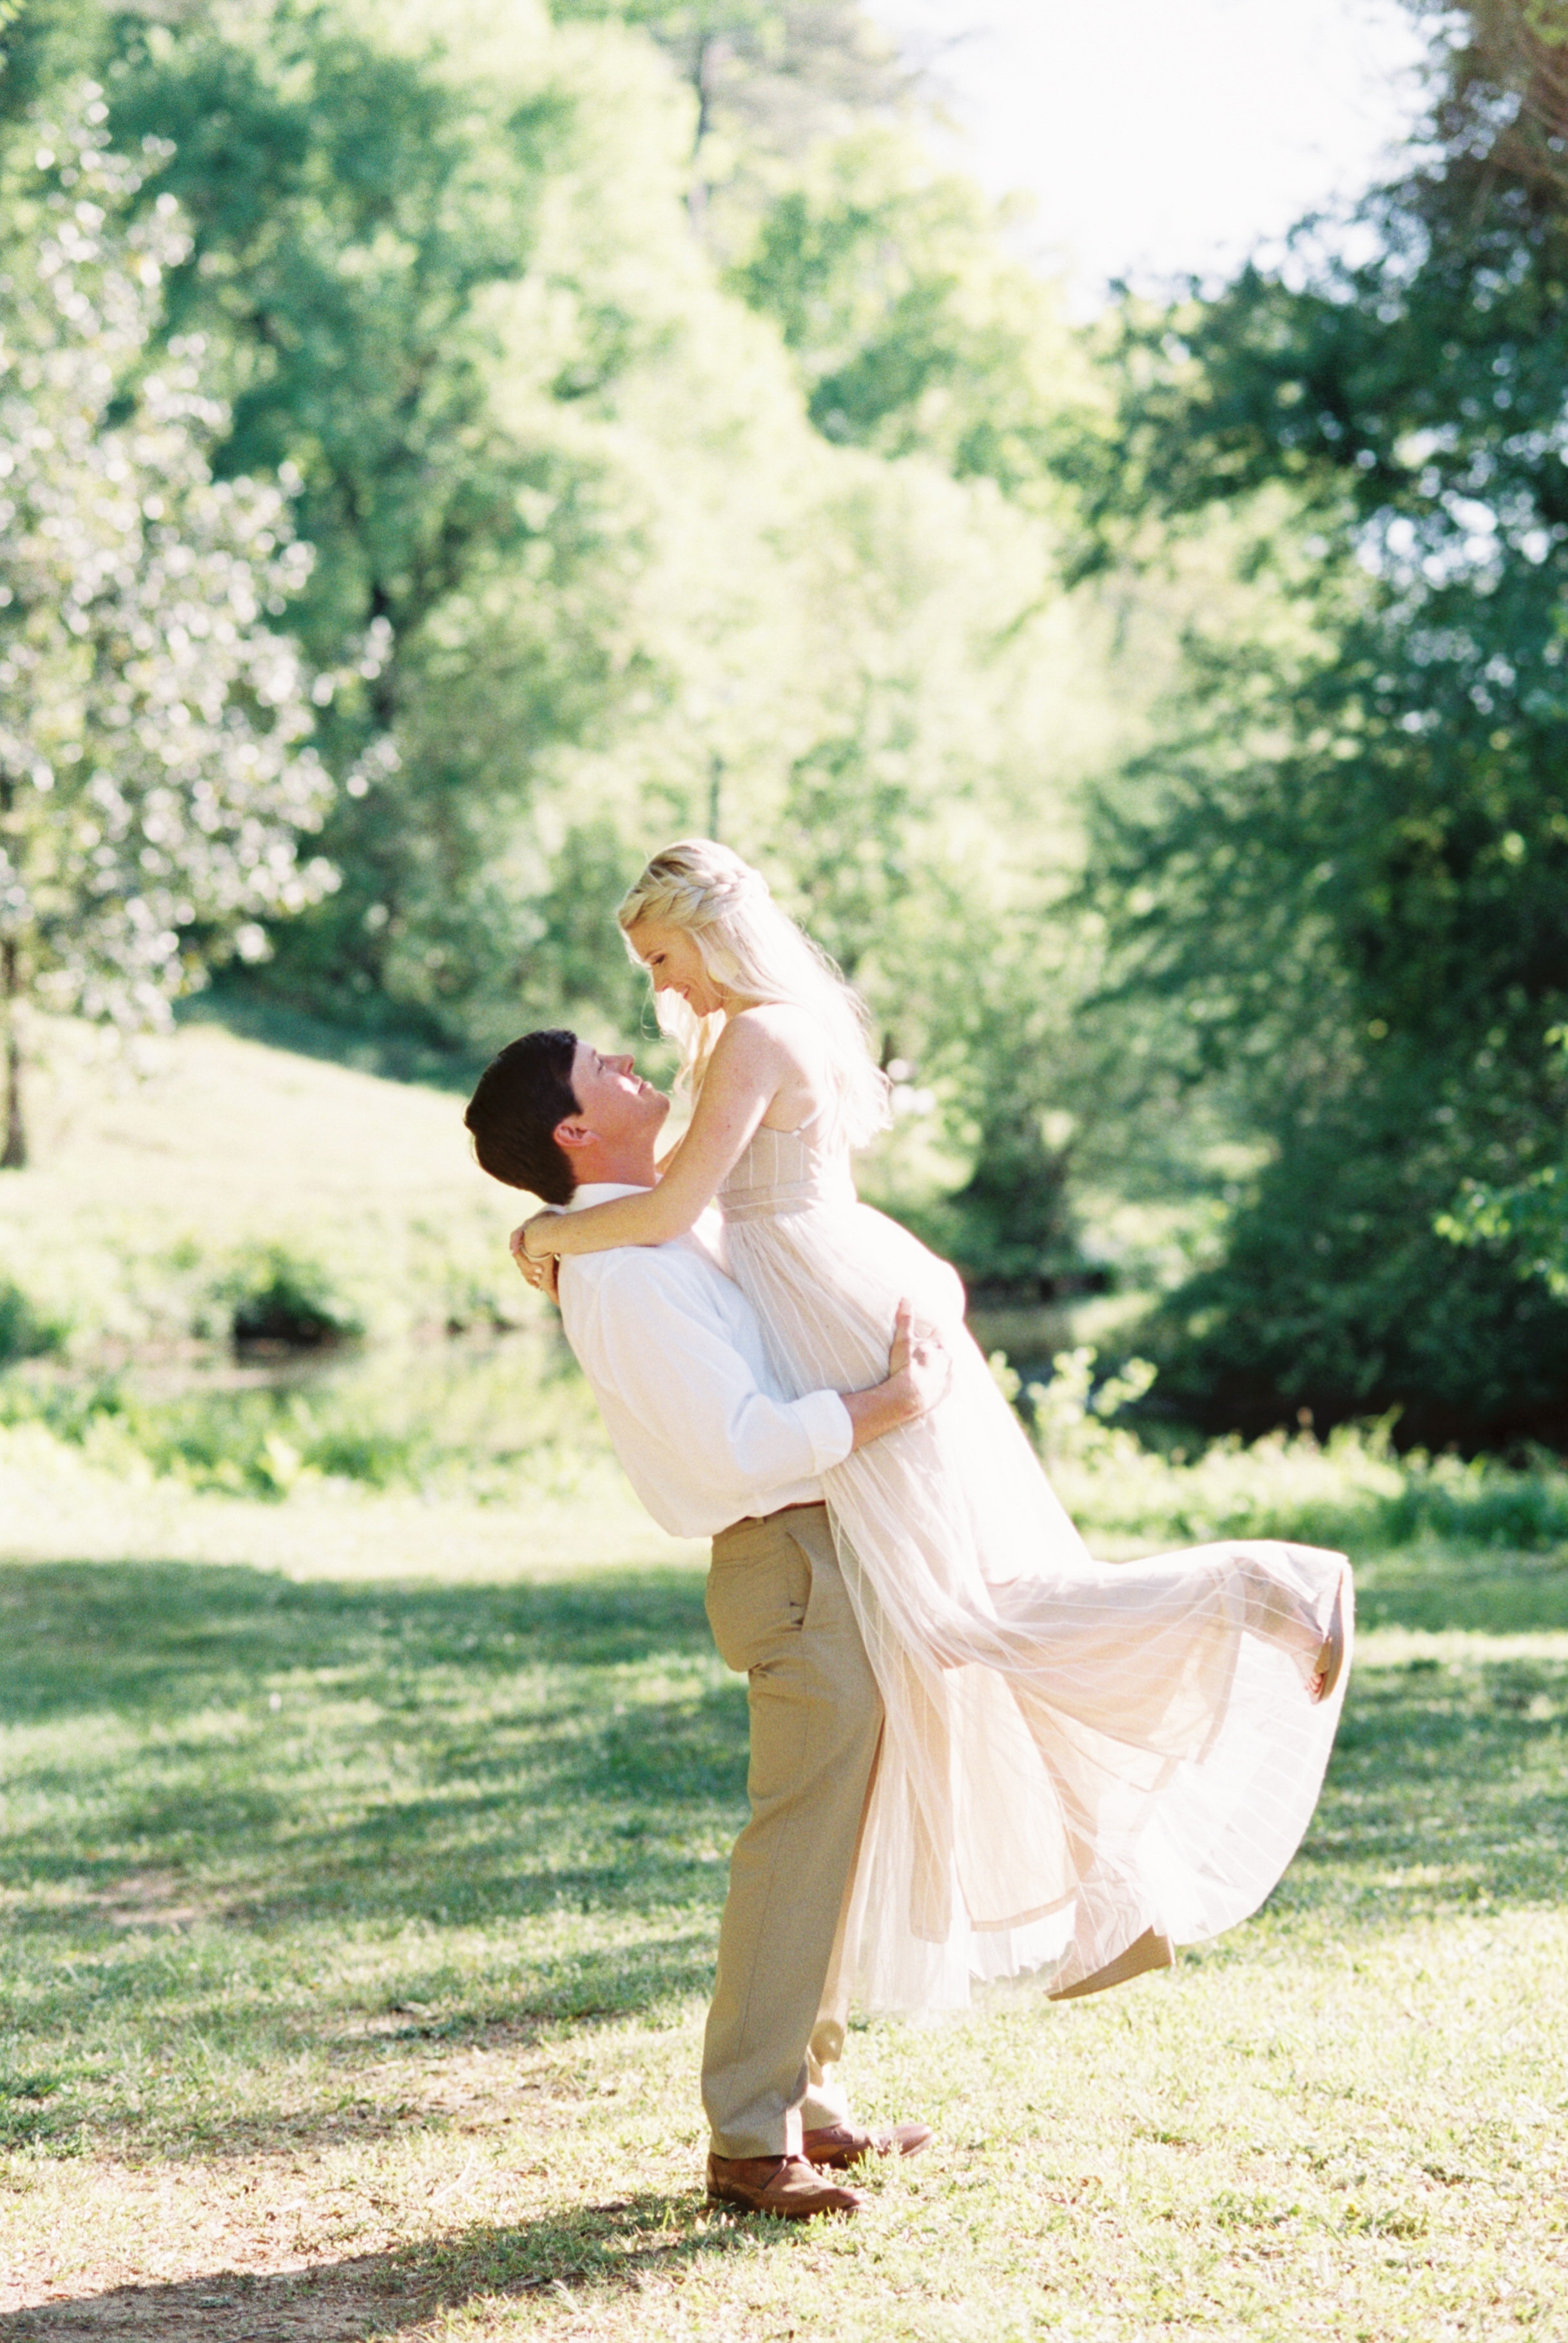 Erin_Johnny_Engagement_Dunaway_Gardens_Georgia_Film_Fallen_Photography-77.JPG